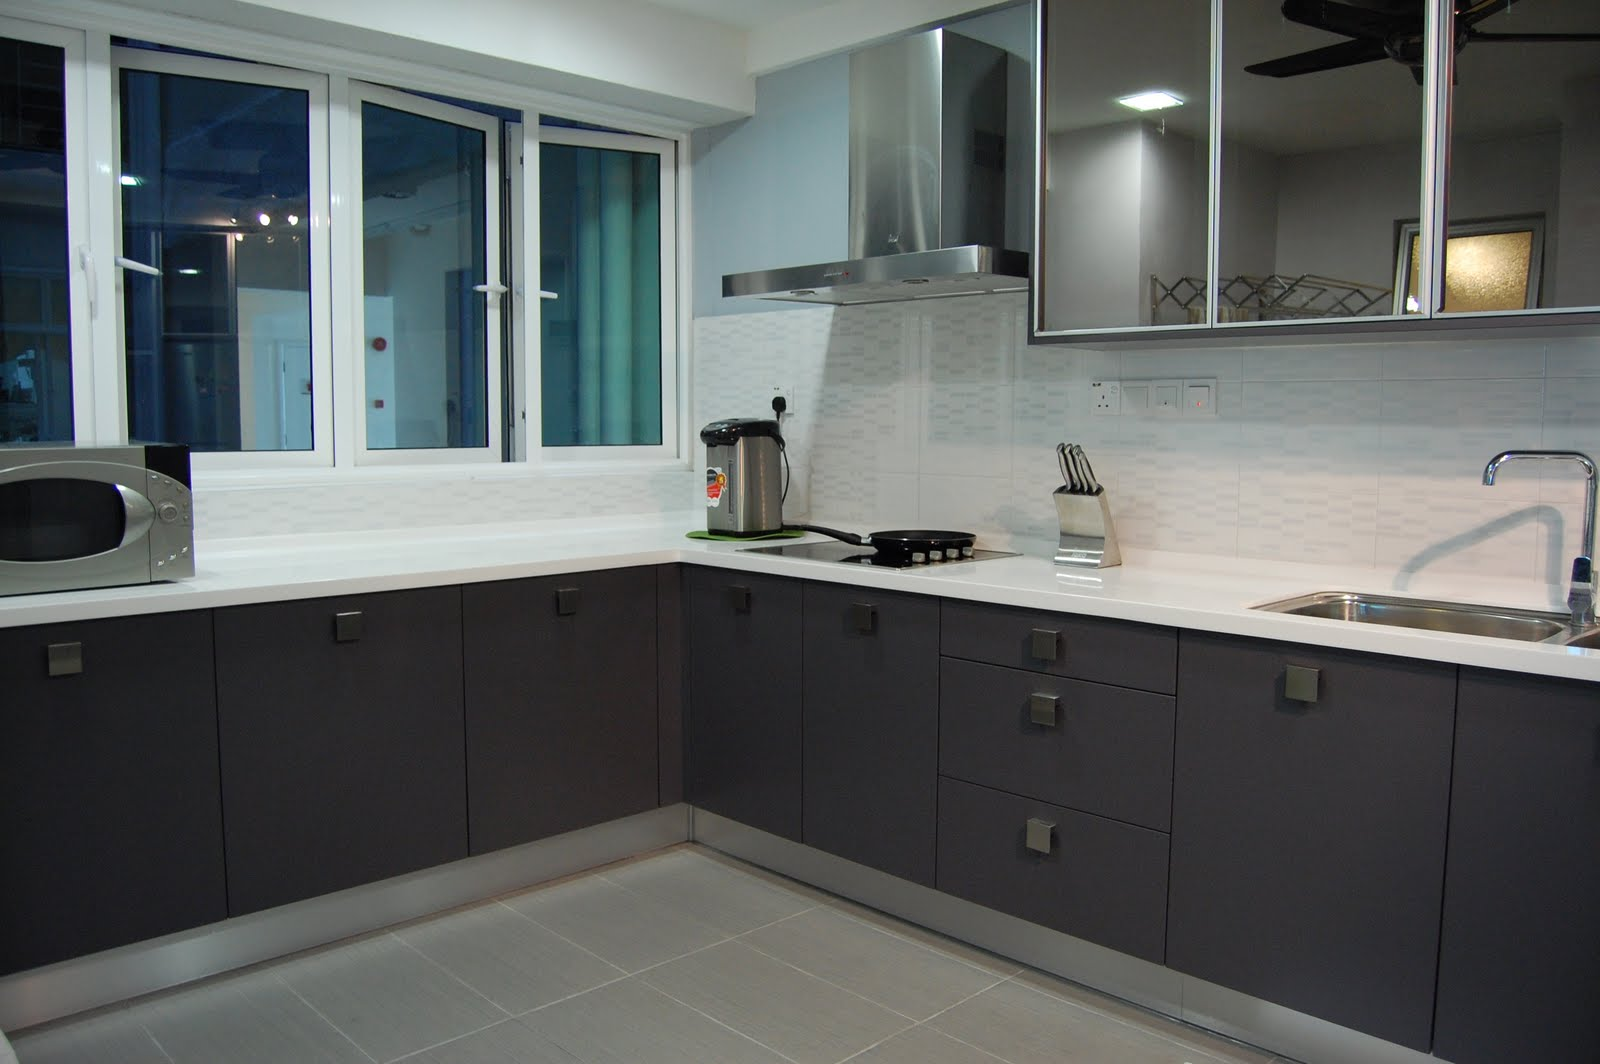 Meridian Design Kitchen Cabinet And Interior Design Blog Malaysia Using A Grey Scheme Casa